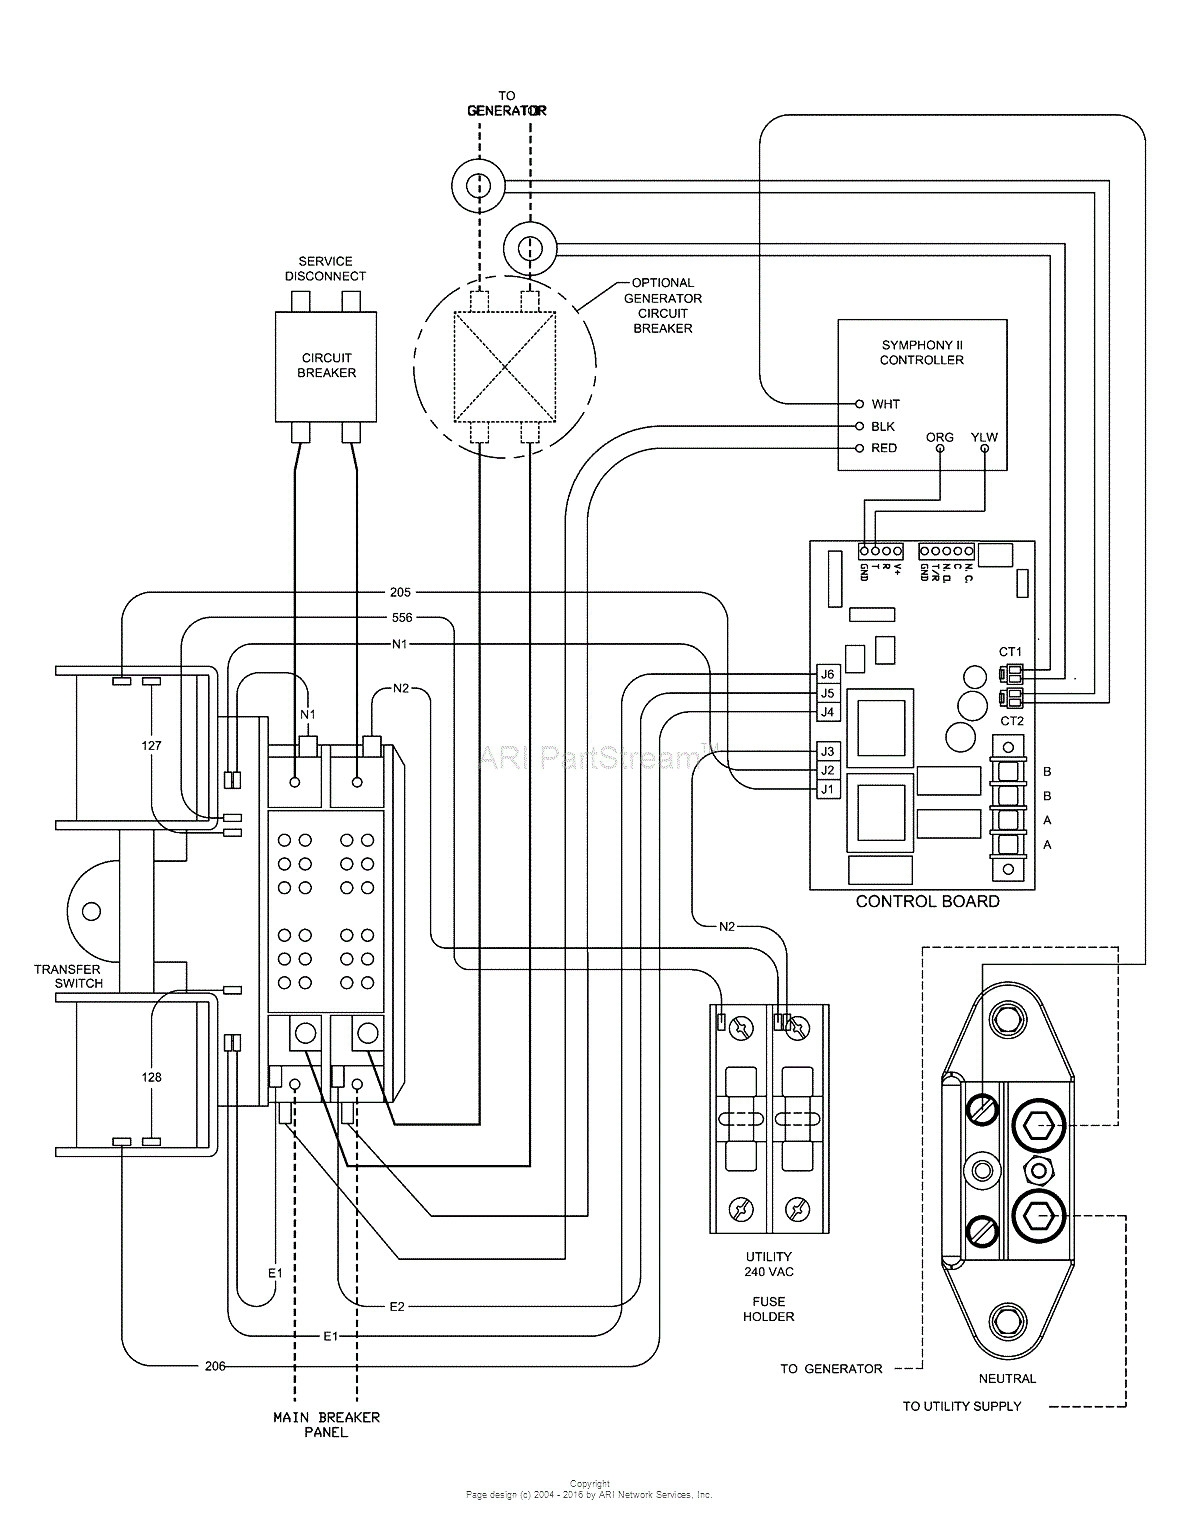 Generac 6333 Wiring Diagram